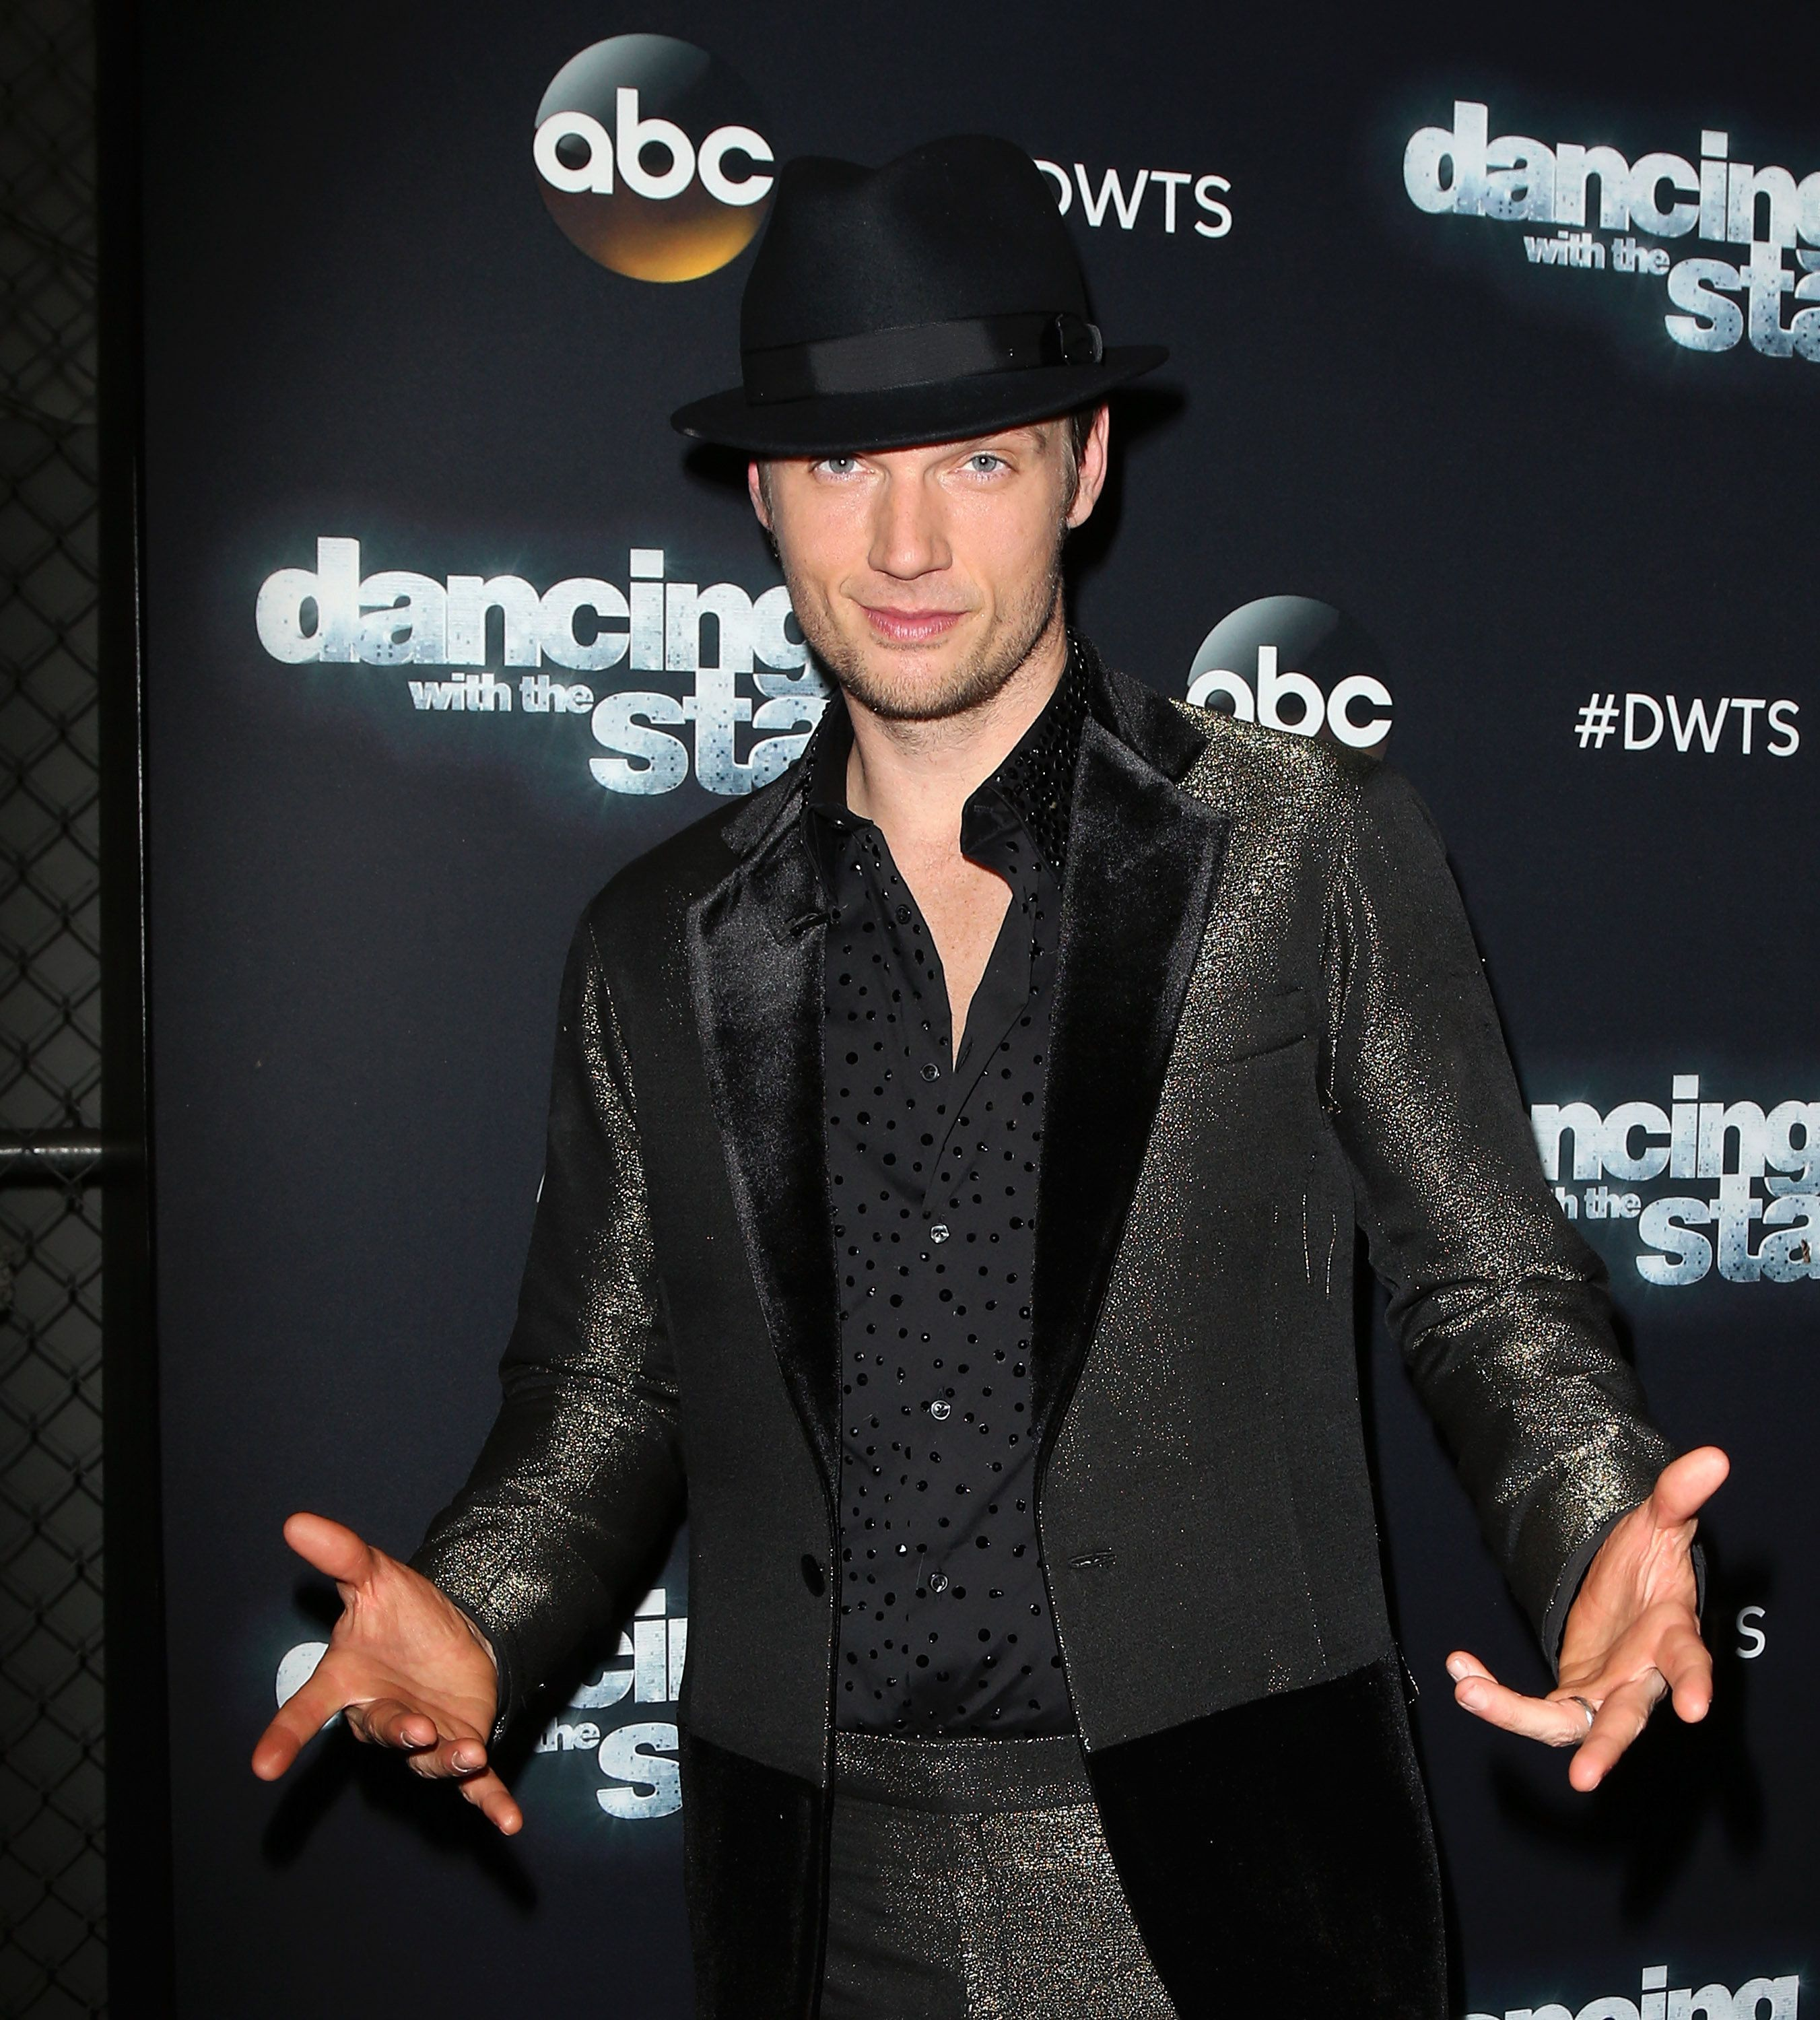 LOS ANGELES, CA - NOVEMBER 16:  Singer Nick Carter attends 'Dancing with the Stars' Season 21 at CBS Televison City on November 16, 2015 in Los Angeles, California.  (Photo by David Livingston/Getty Images)